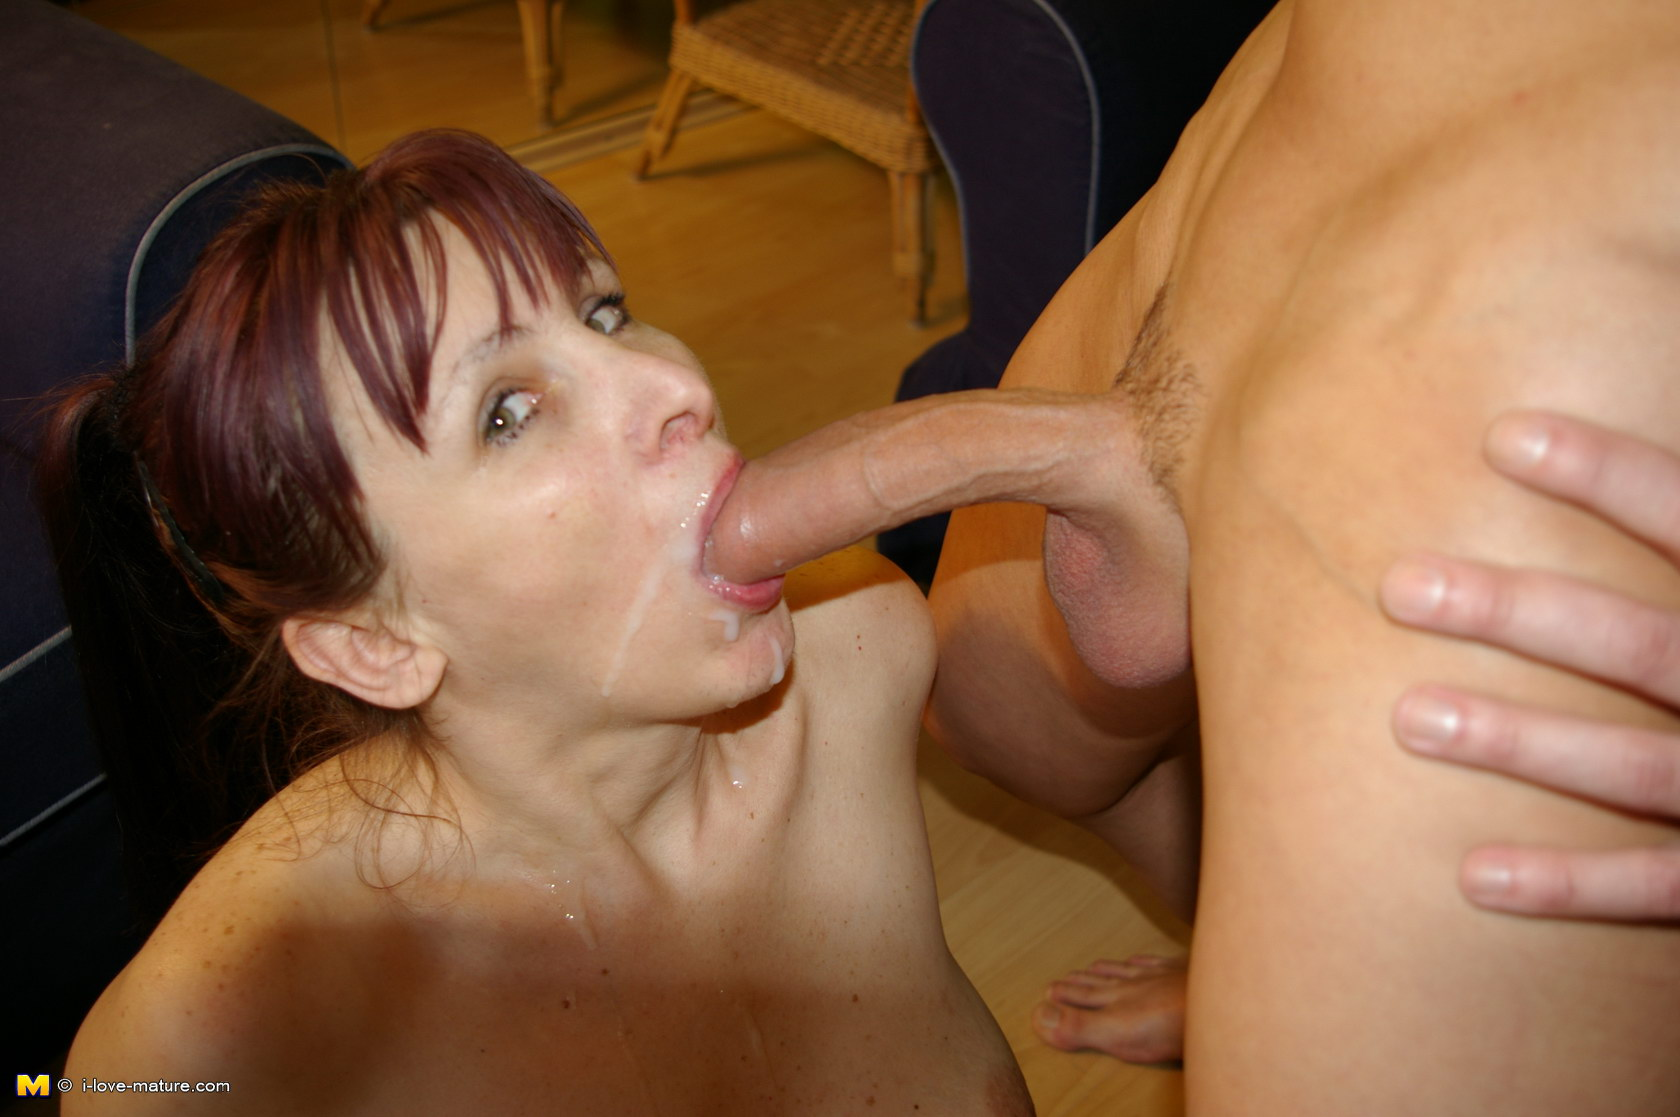 Slutty grandma sucks cock and gets a mouth full of cum 10